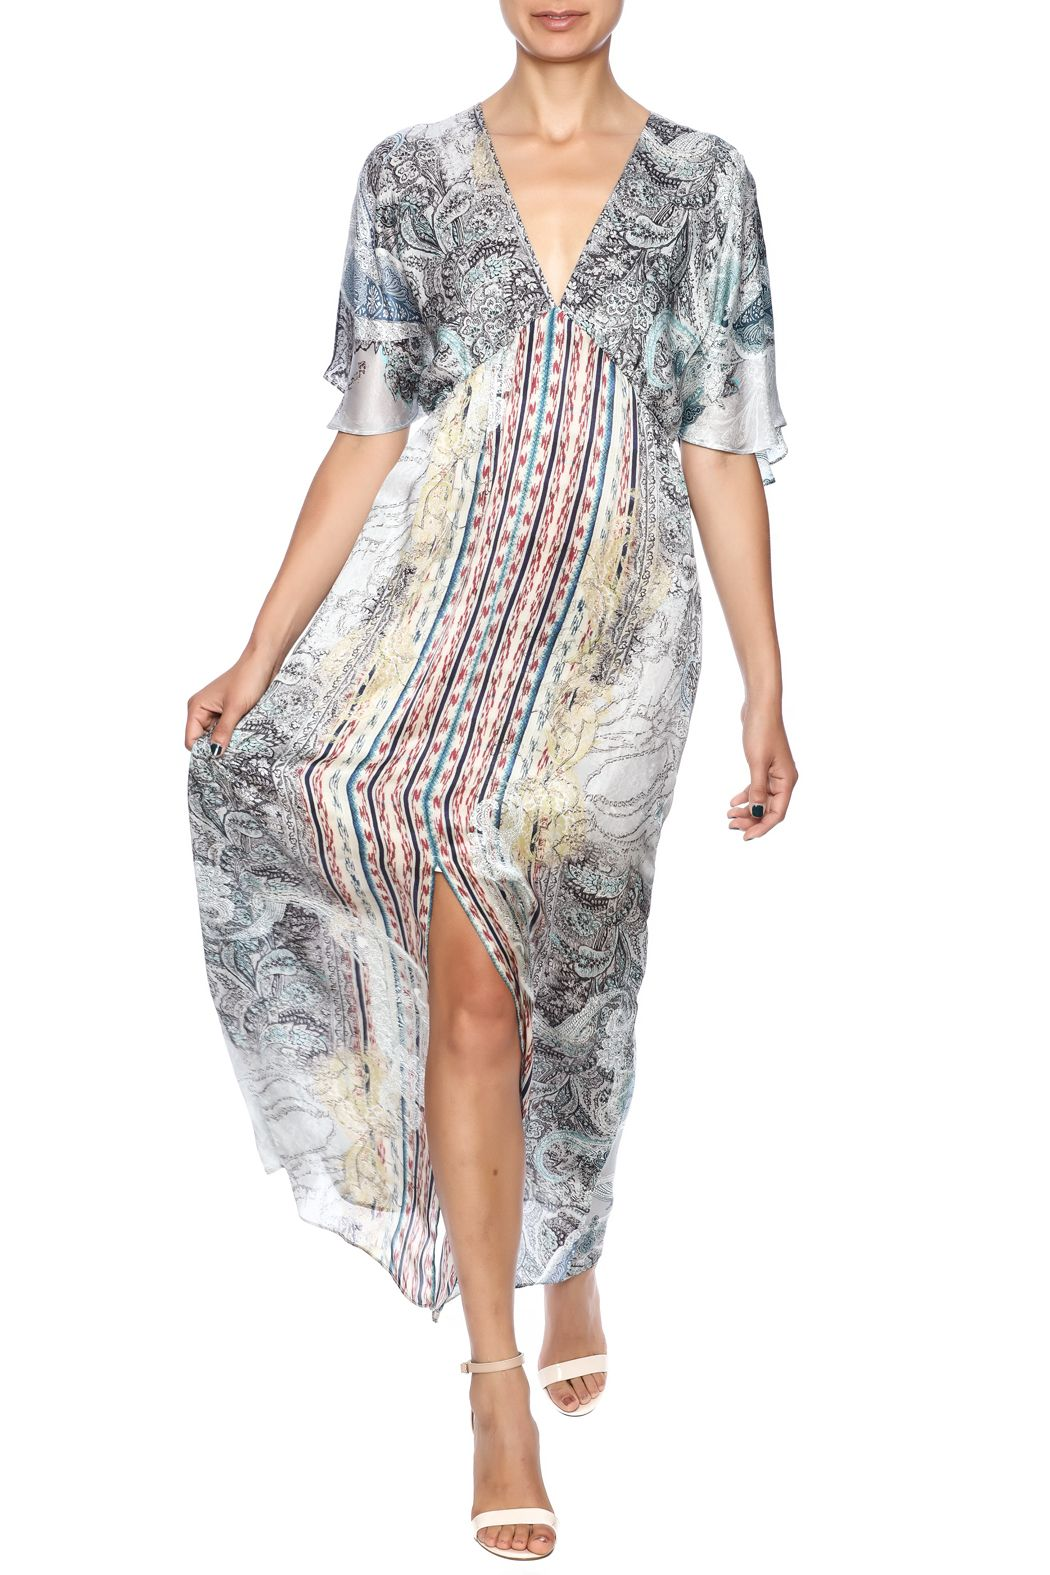 Single willow flutter dress maxi dress styles and boutique